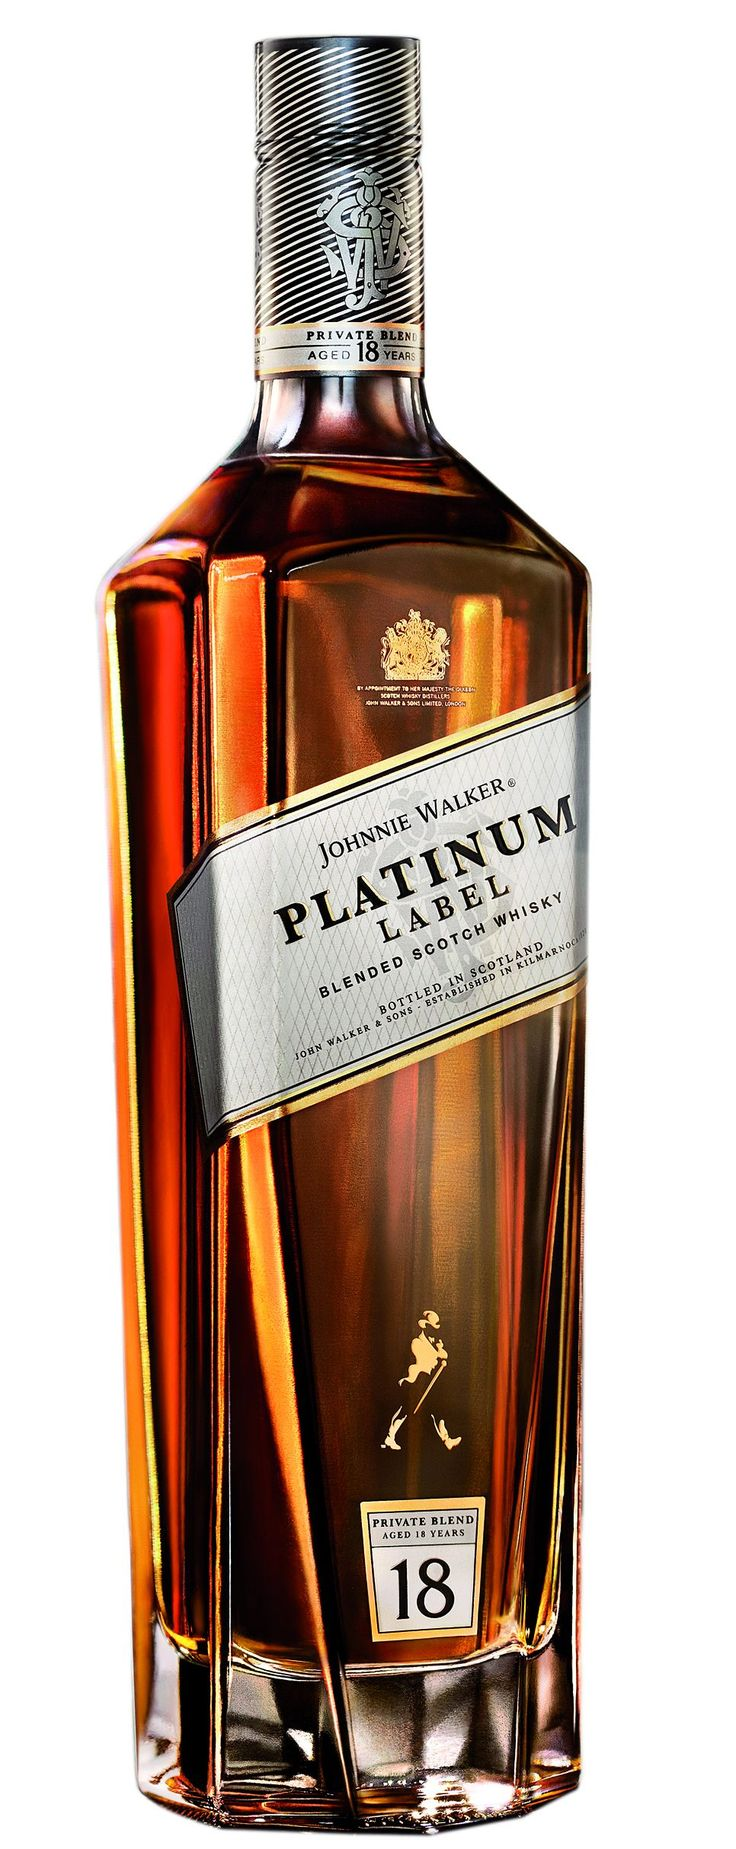 Johnnie Walker Platinum Label. Tasting Note: Sweet rich and deep notes with maraschino cherries, toffee caramel, vanilla, baked rhubarb crumble and a very thin whiff of smoke.  Photo: kosherwinecellar.co.uk